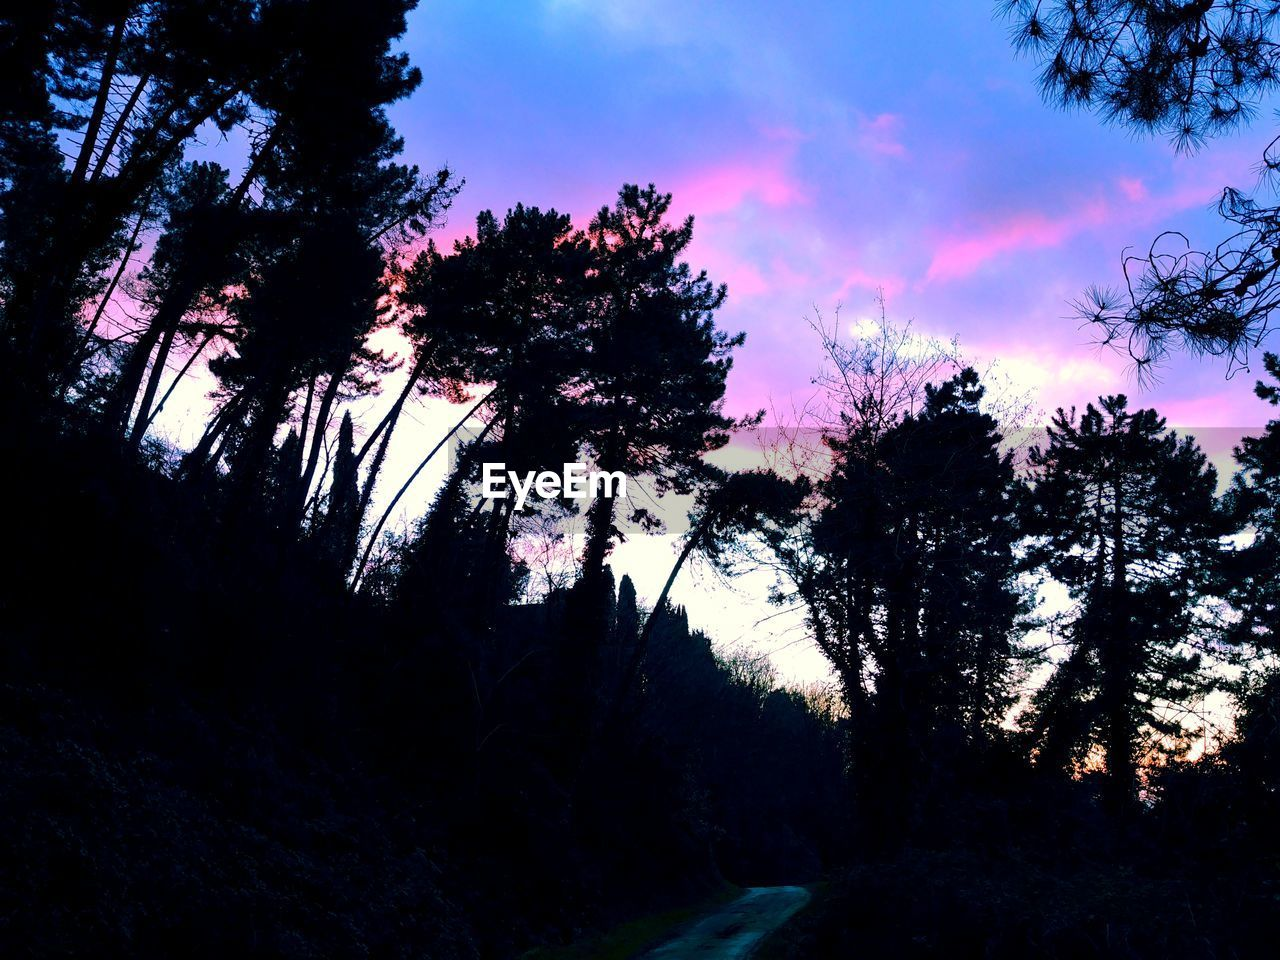 LOW ANGLE VIEW OF SILHOUETTE TREES AGAINST SKY IN FOREST